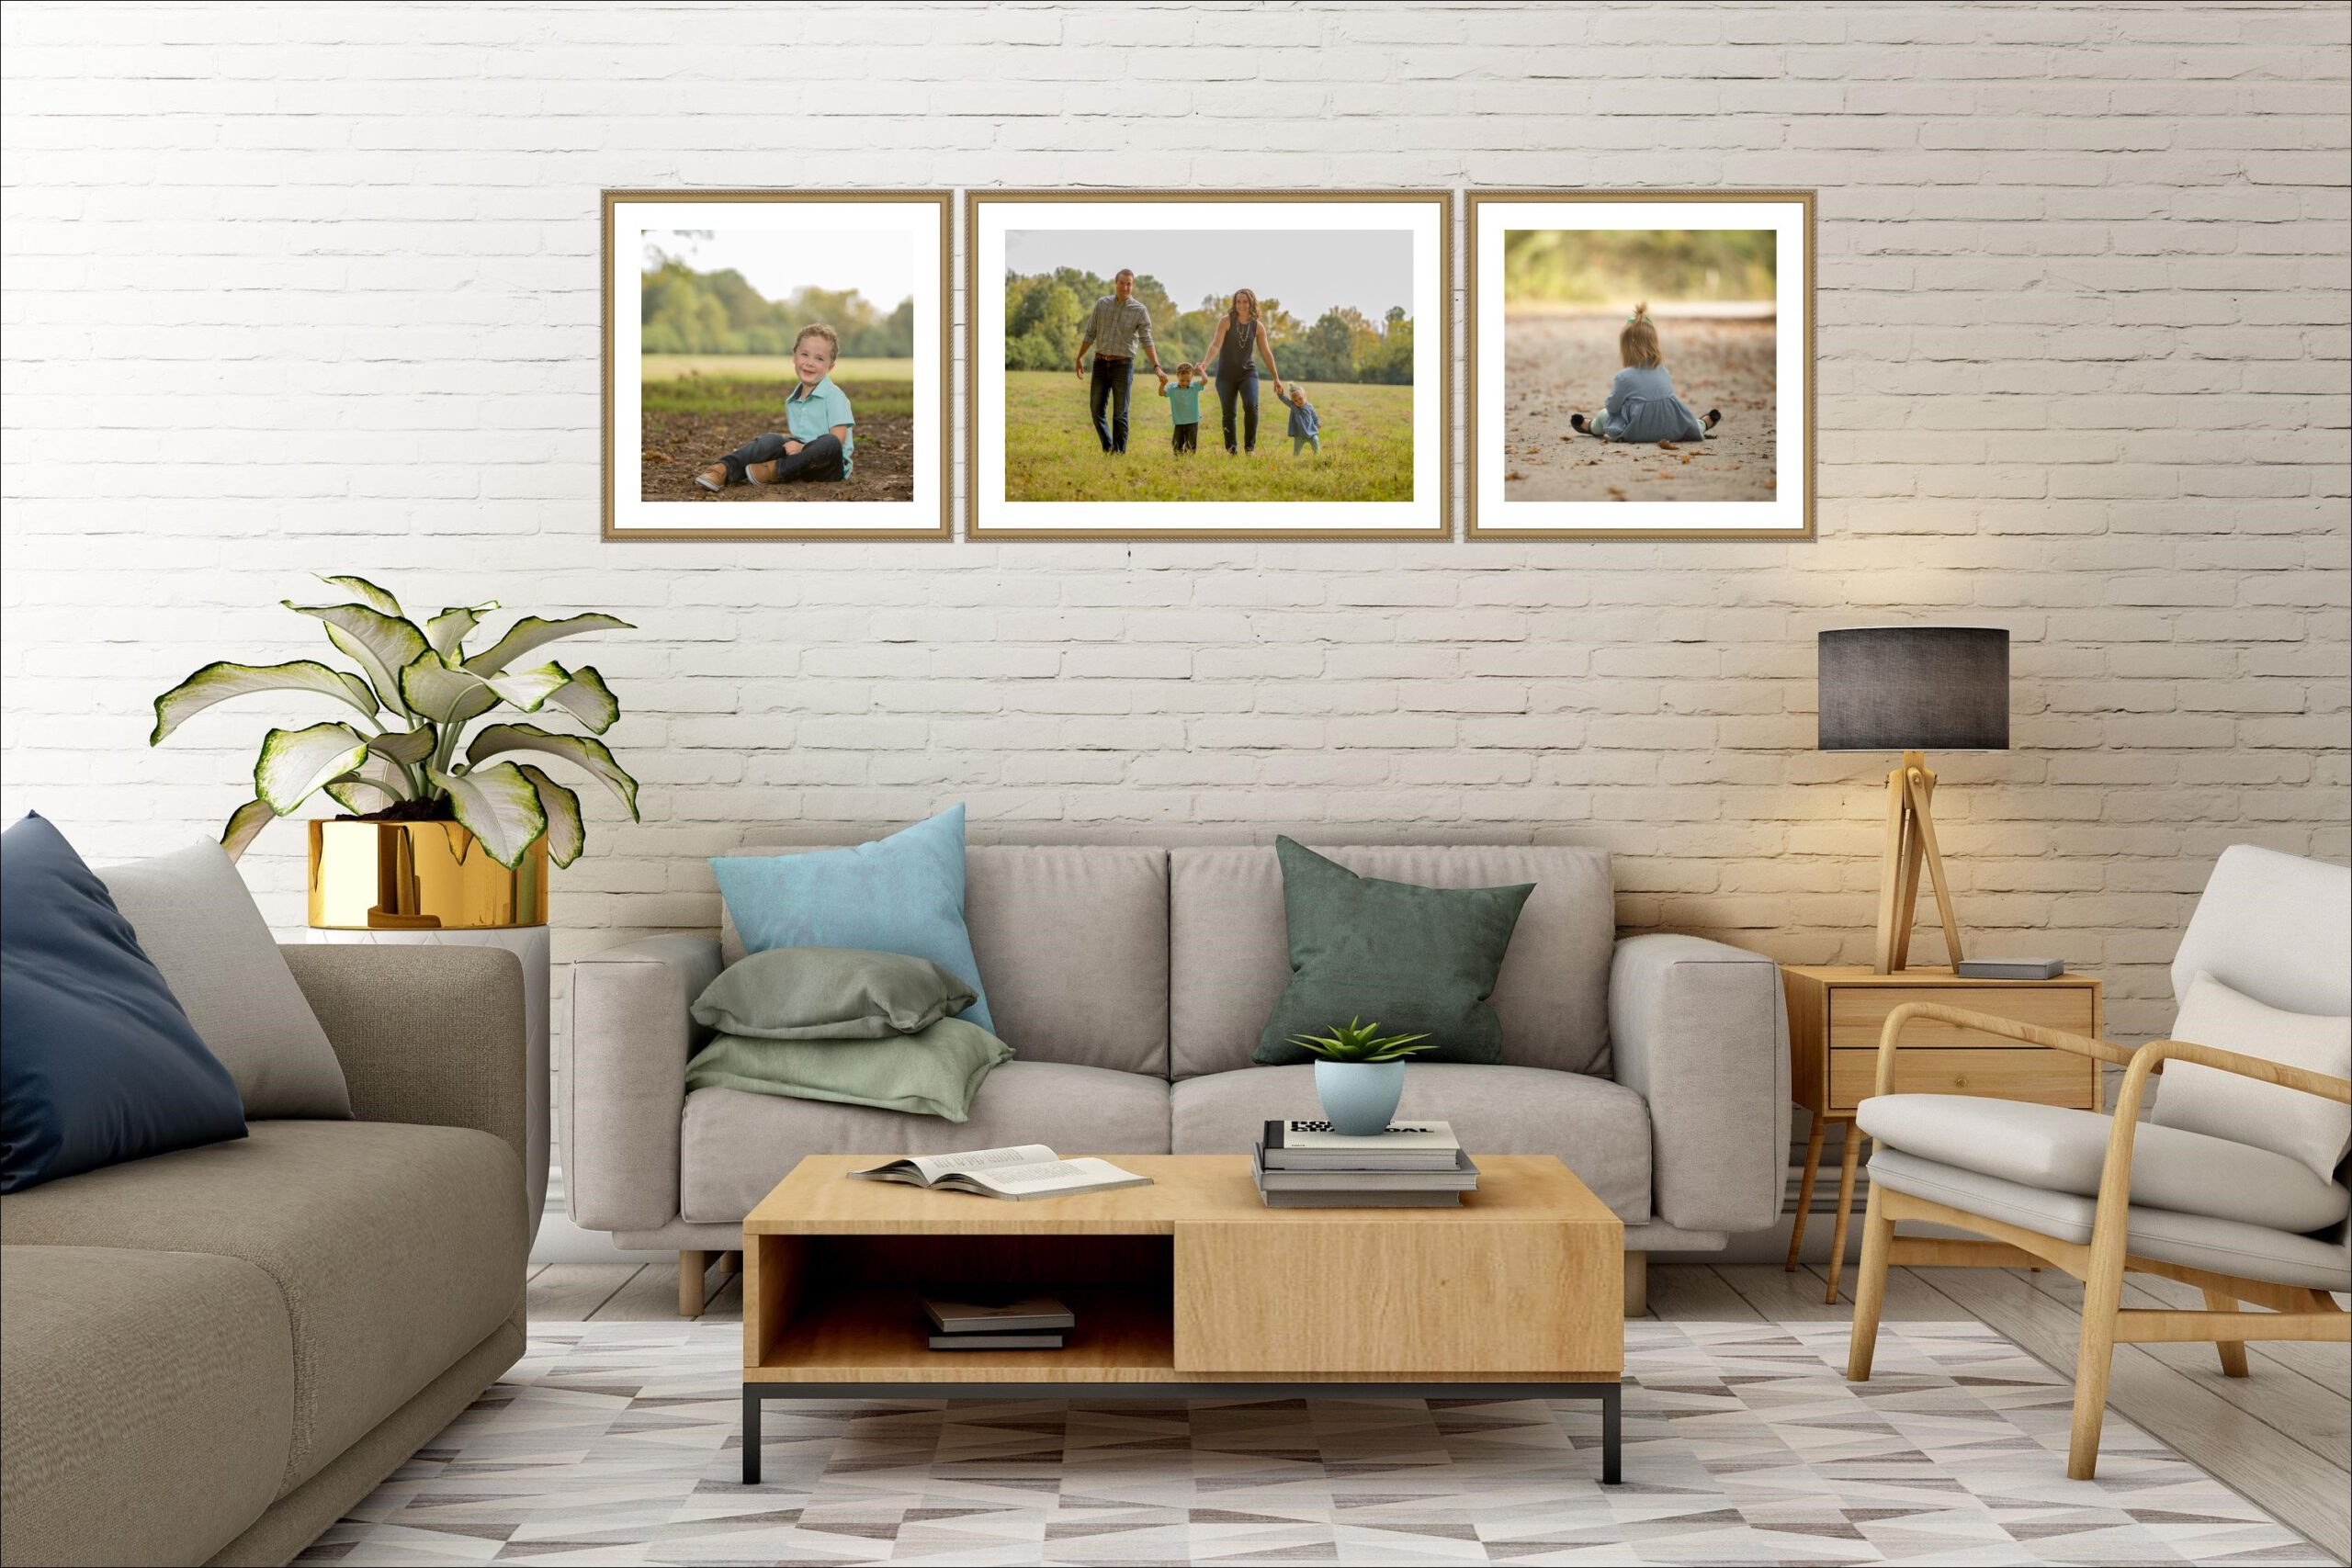 4 Easy Steps to Decorate With Photographs 7